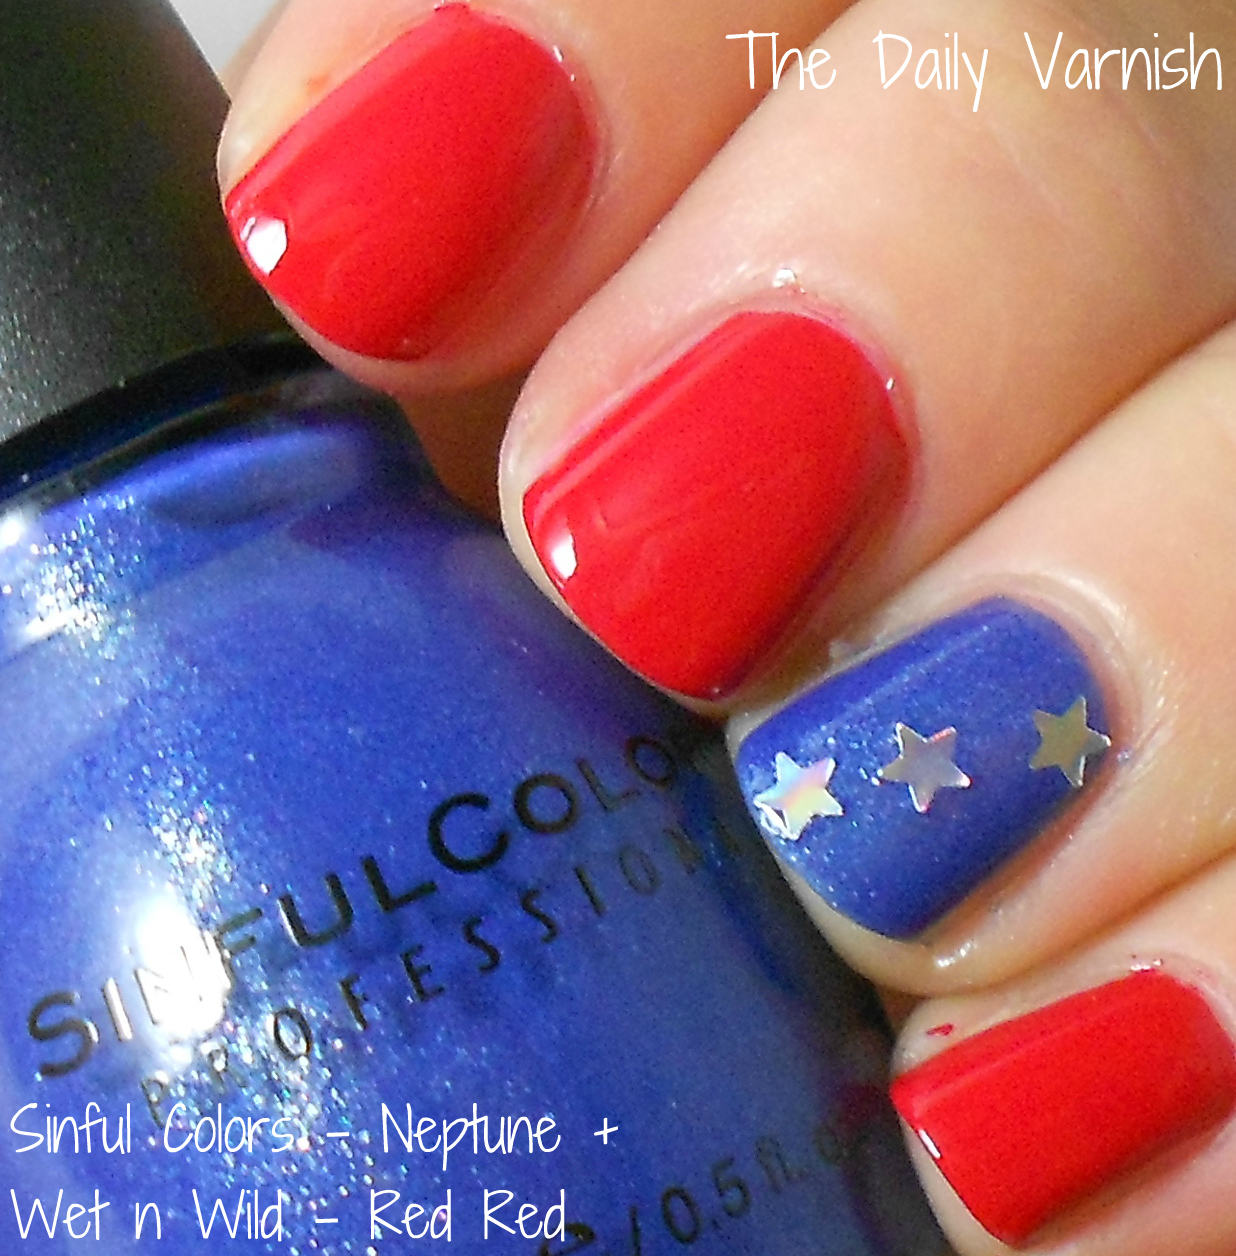 SinfulColors | The Daily Varnish | Page 2